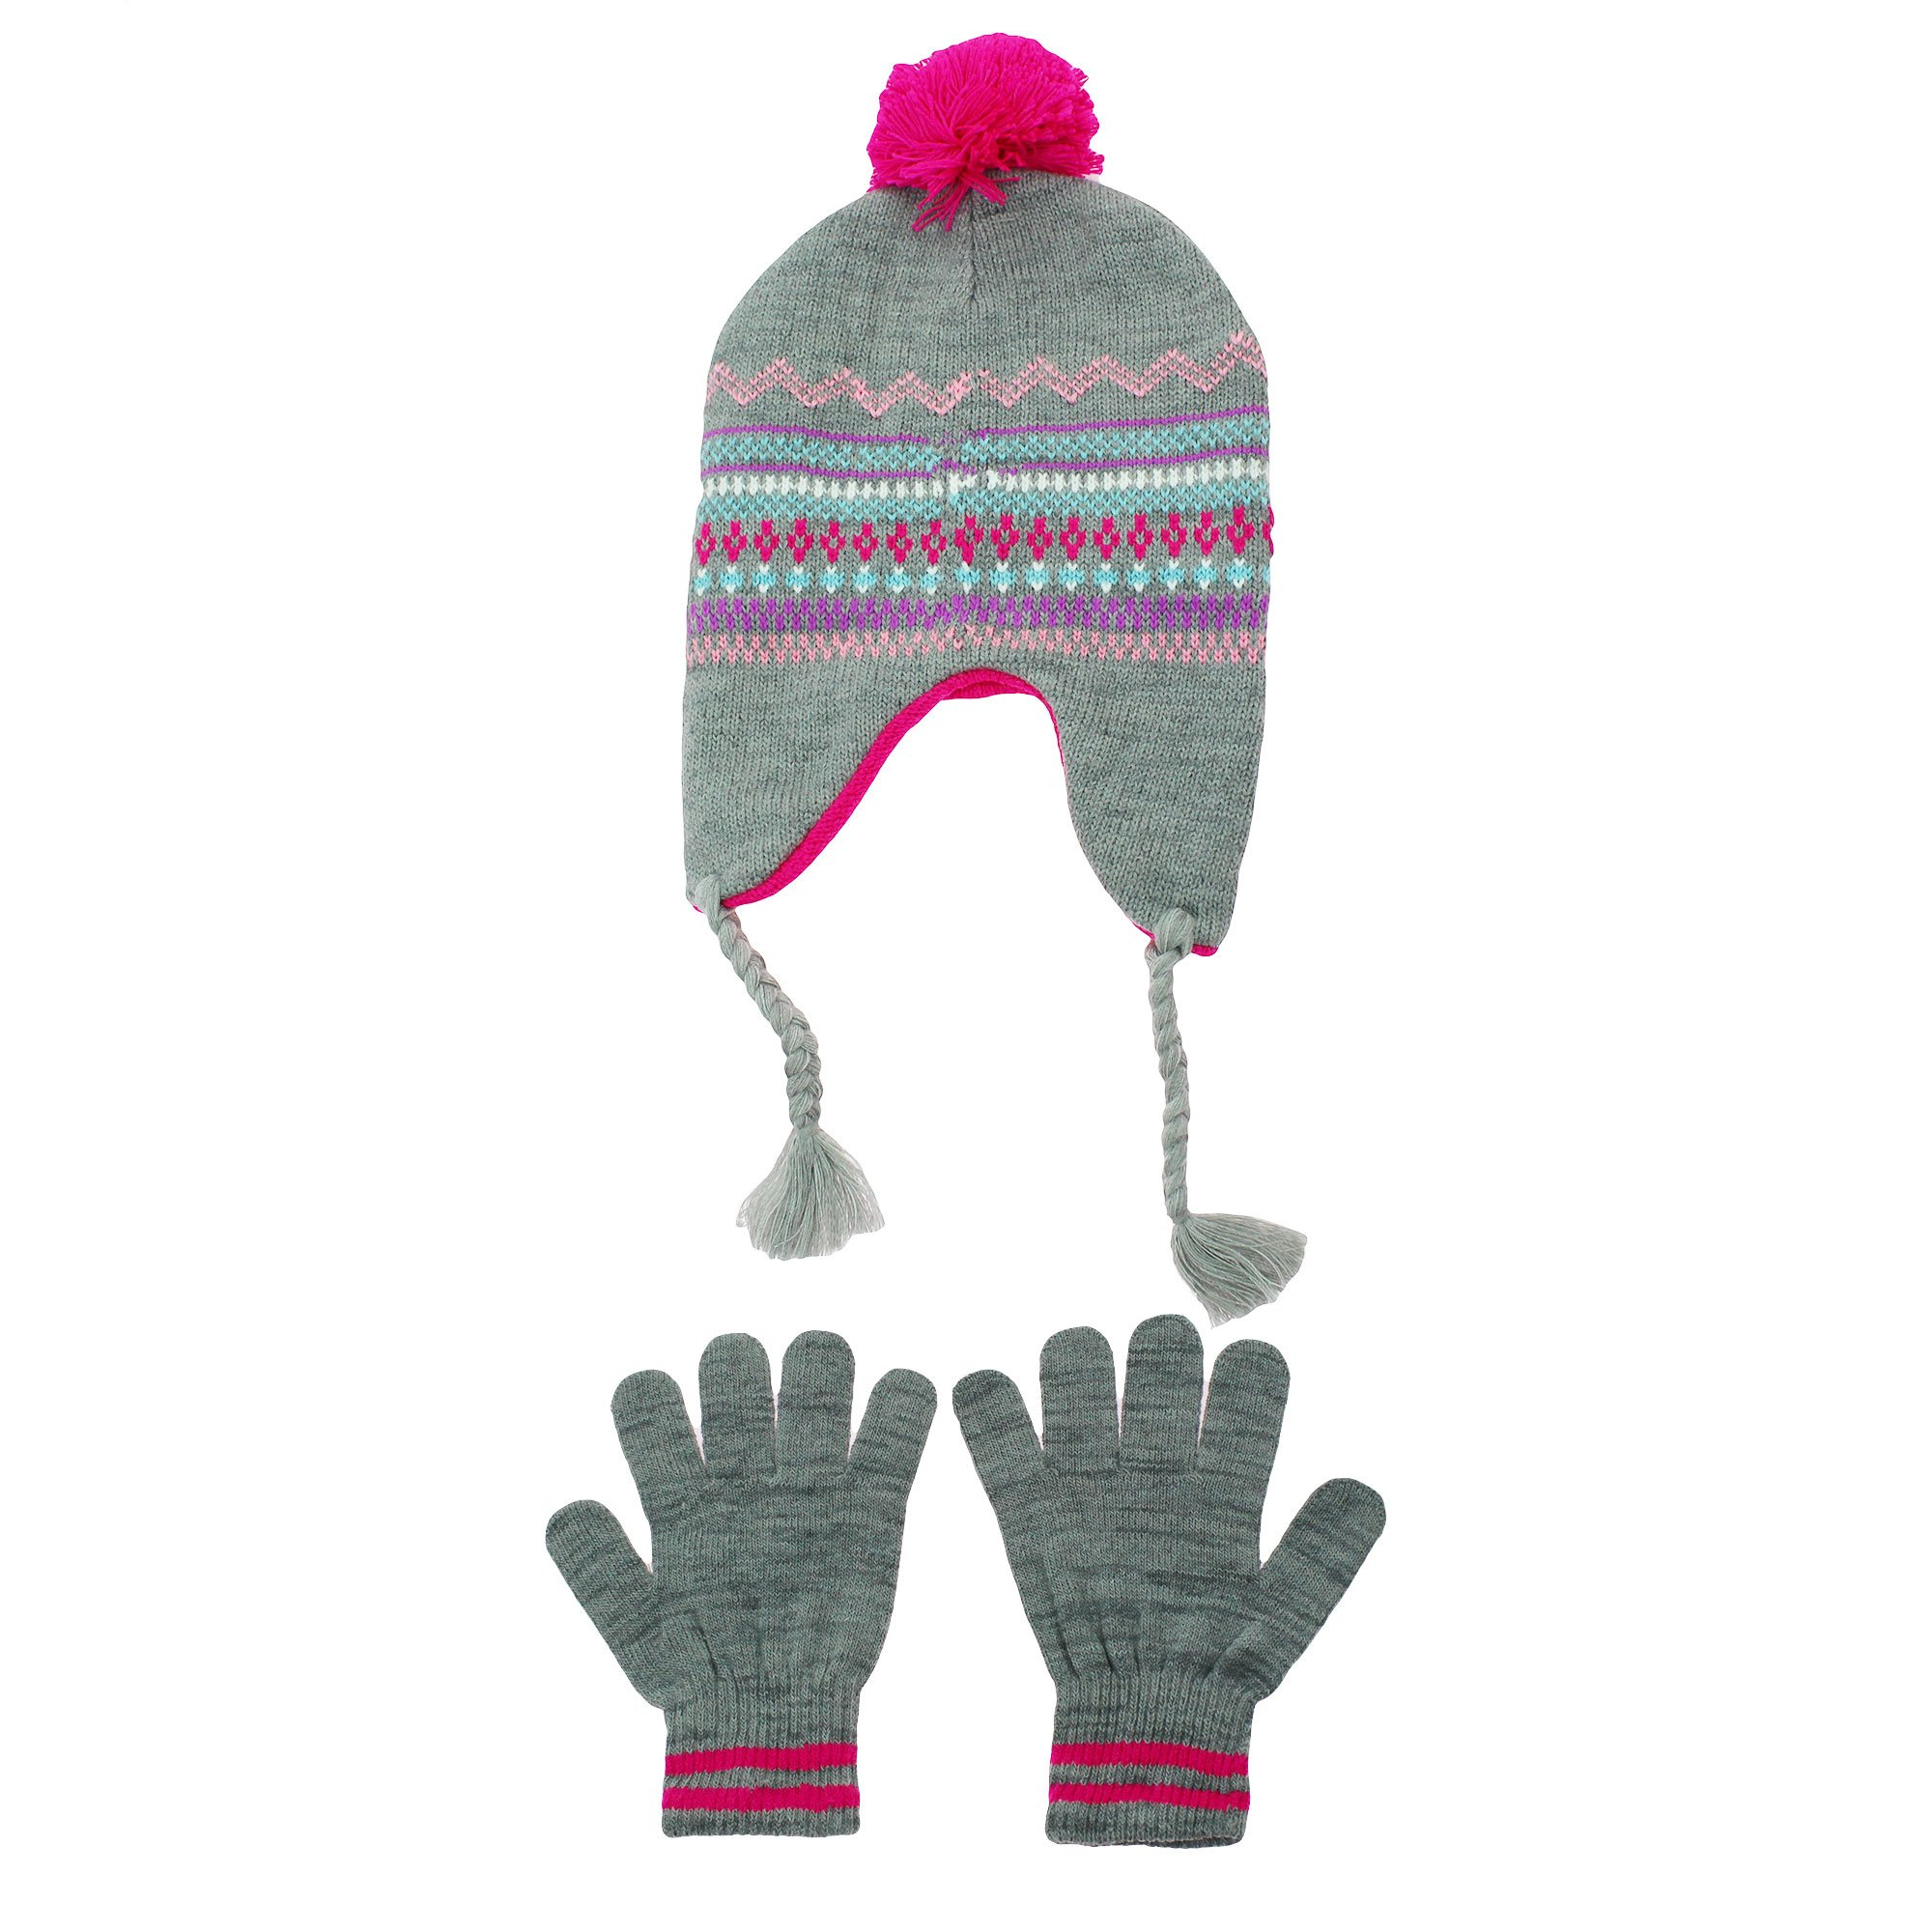 294bc79edd5 Get Quotations · Hanes Girls Heather Grey Fairsile Peruvian Hat and Glove  Set Youth 4-14 Pom Pom